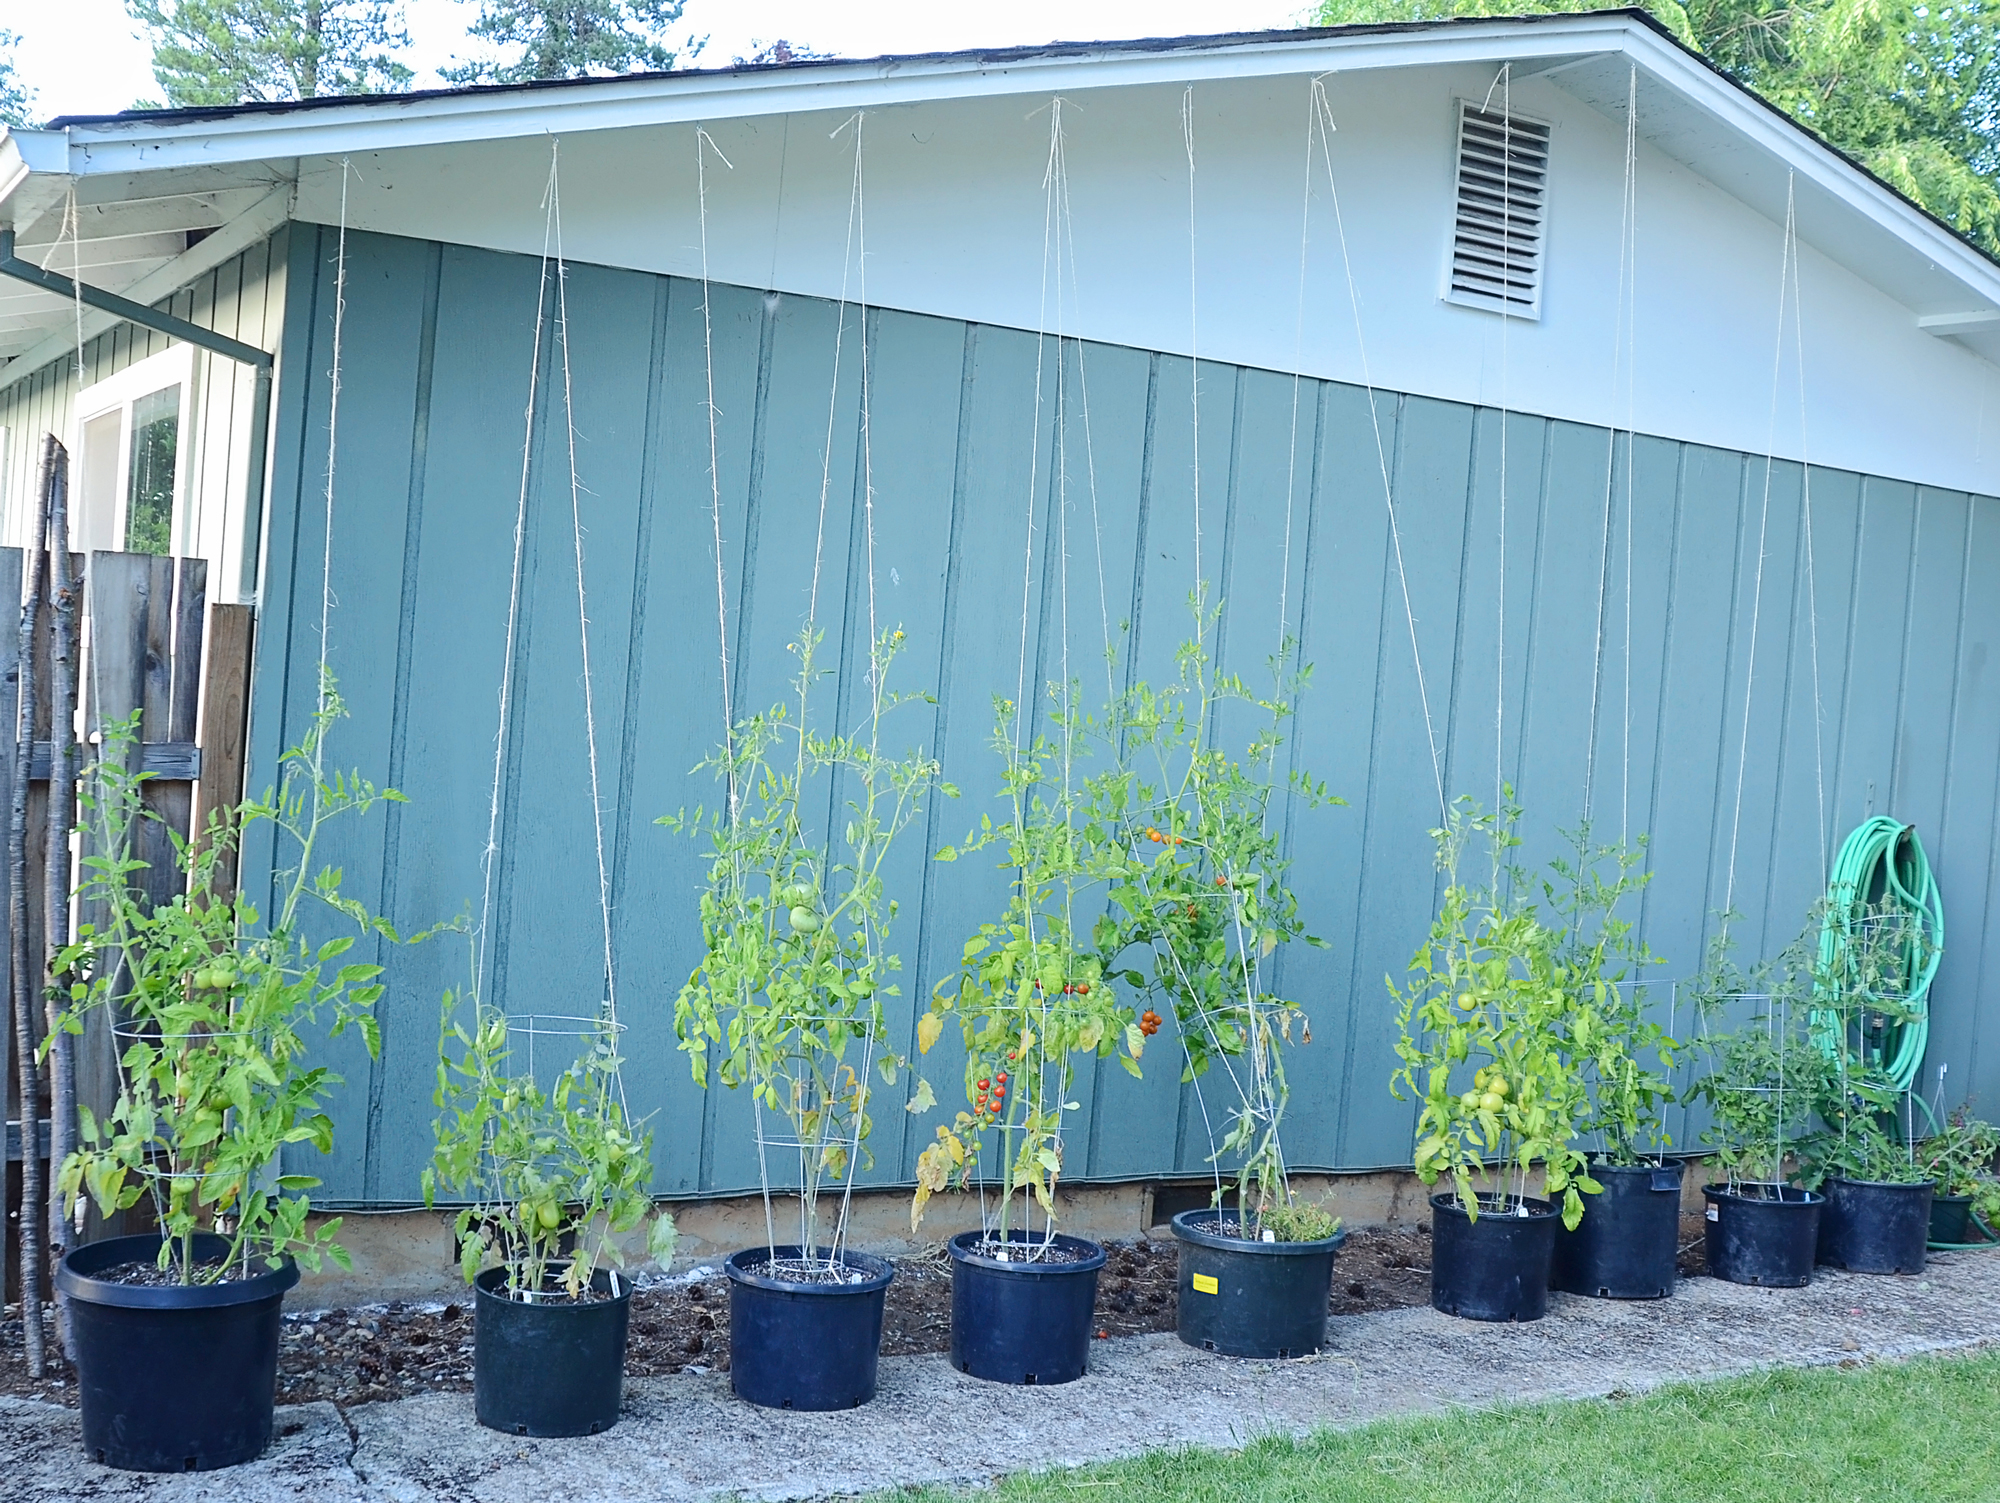 From an employee garden: A creative way to trellis using some leftover pea & bean string